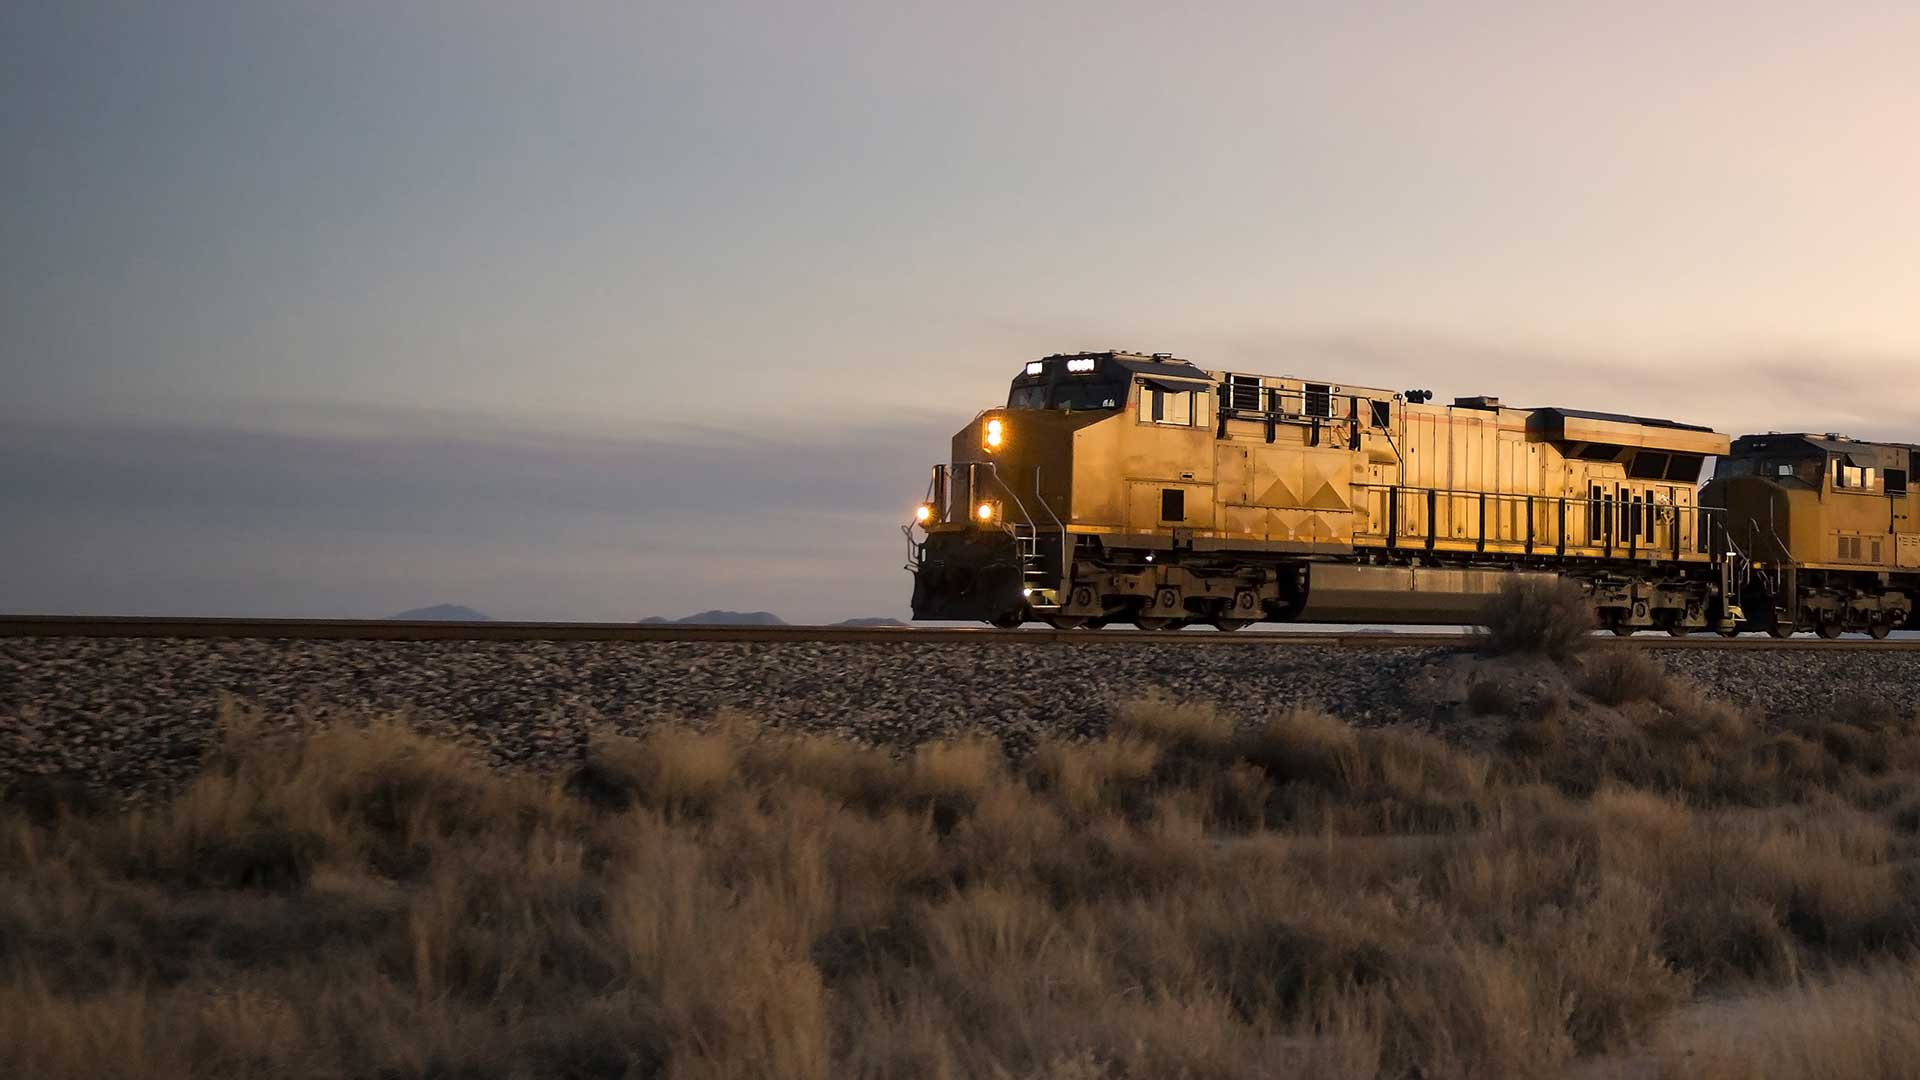 cargo train travelling through rural area at twilight